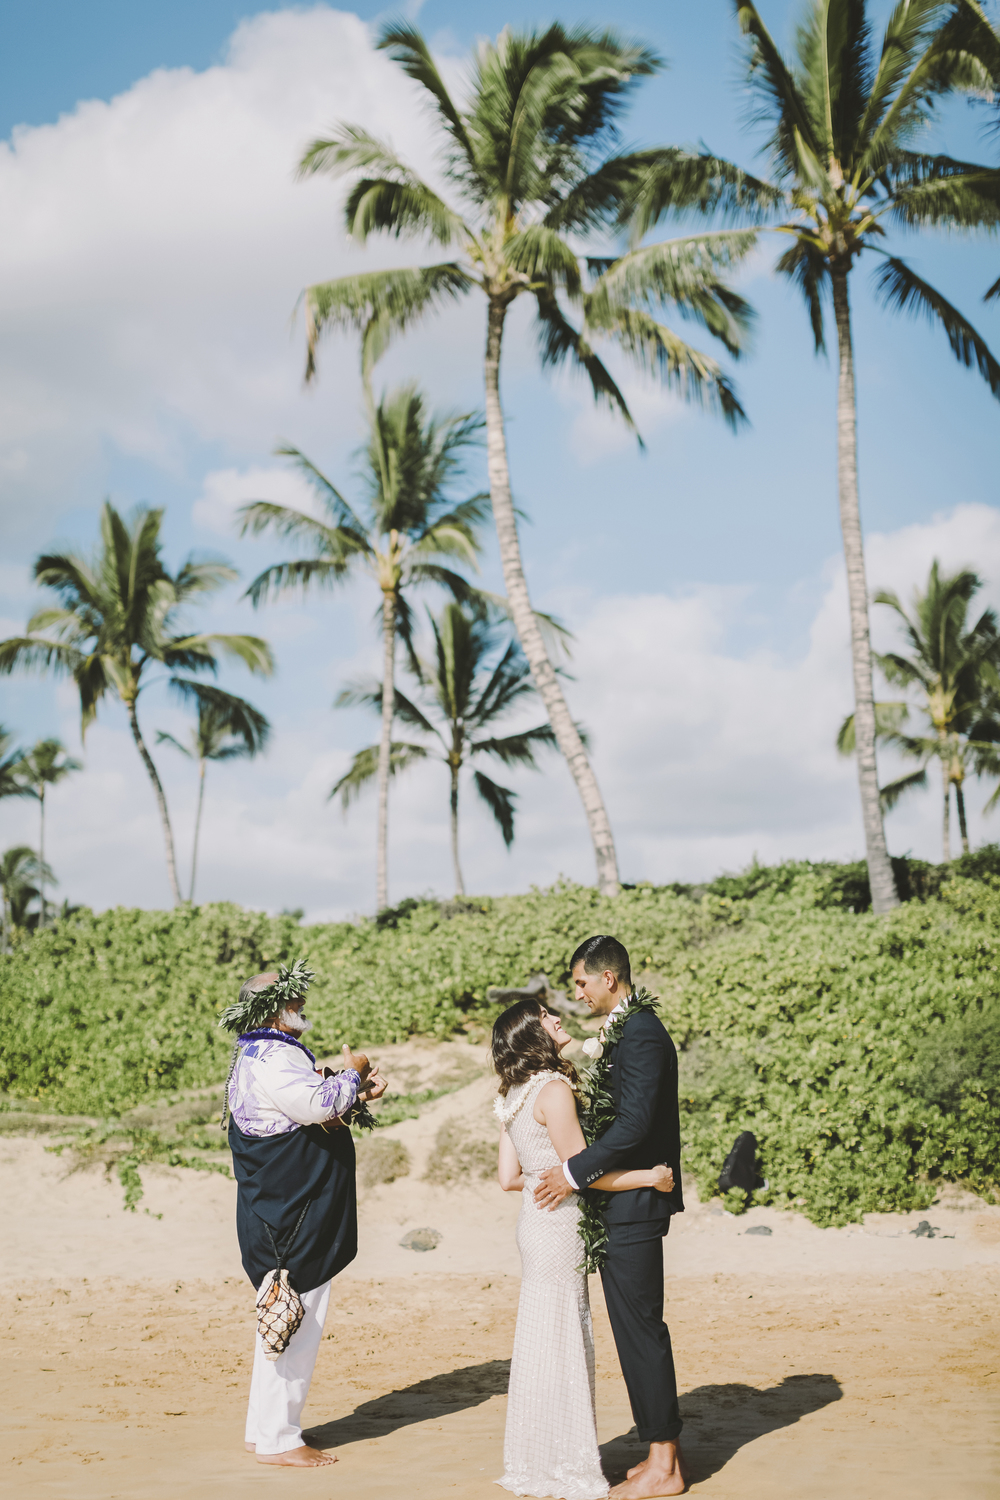 angie-diaz-photography-mokapu-beach-maui-elopement-31.jpg